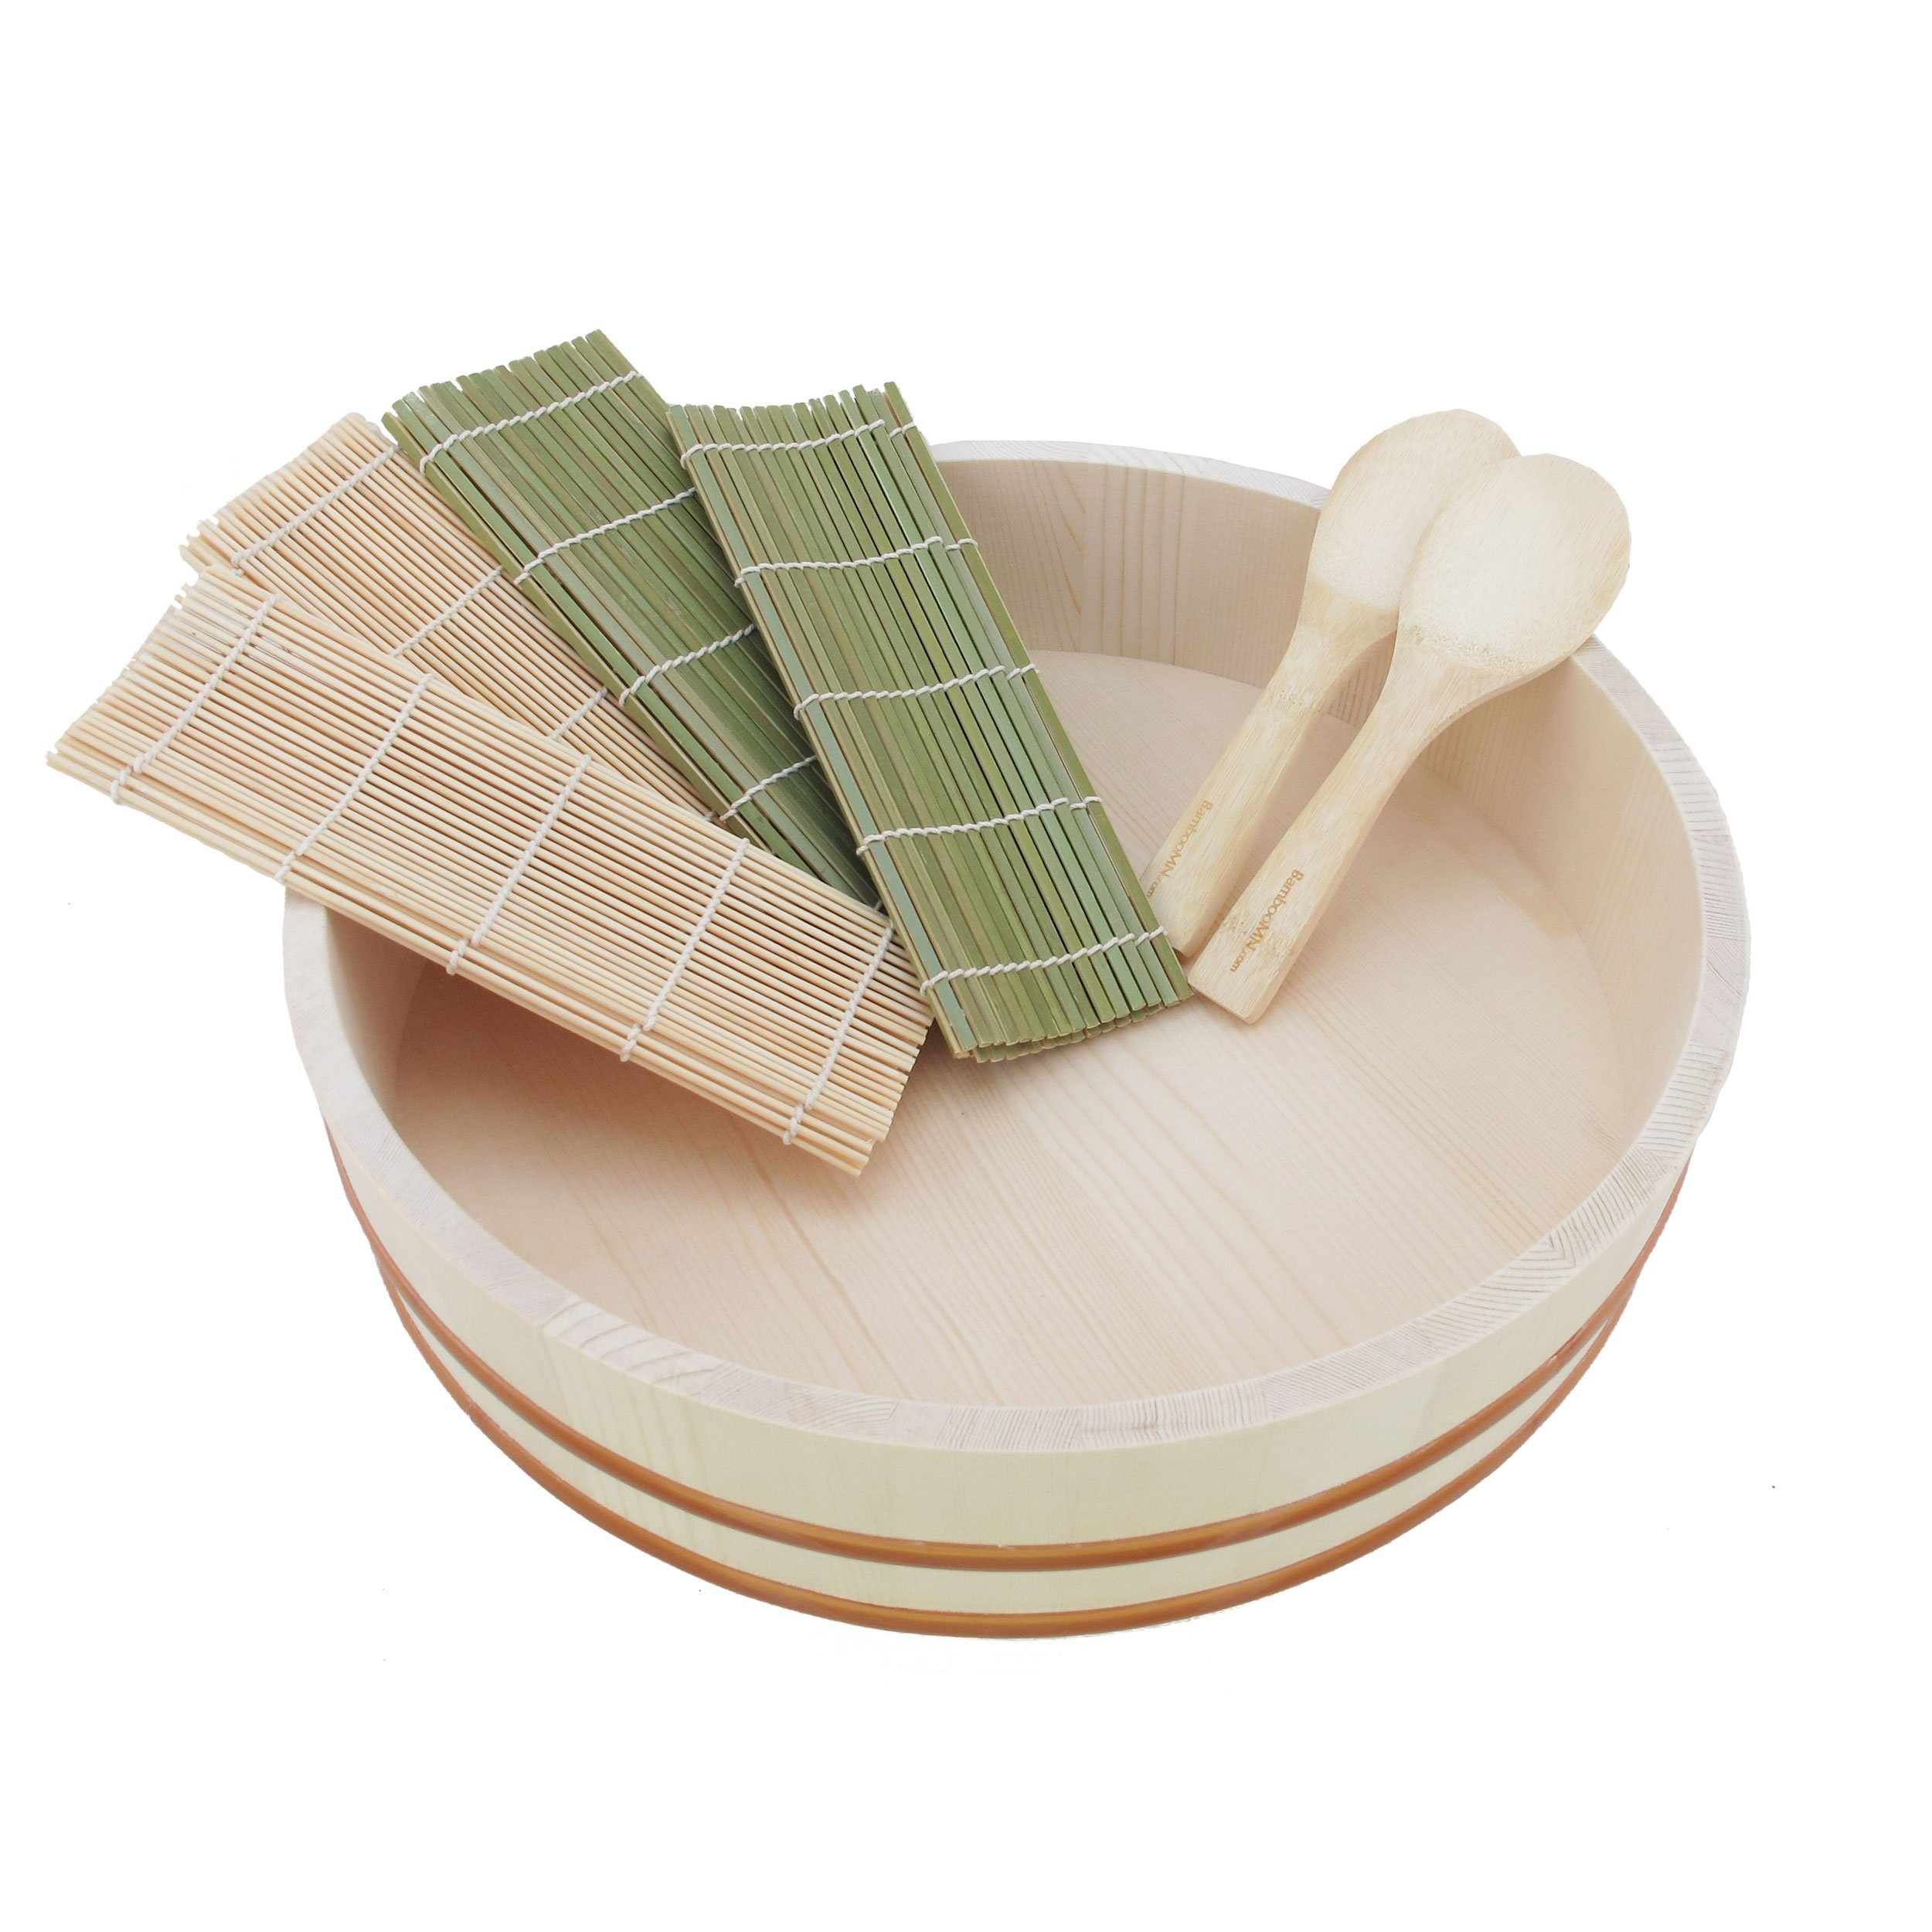 BambooMN 14.2'' Sushi Oke Tub Hangiri with 7 Pieces Sushi Making Serving Accessory Kit by BambooMN (Image #1)